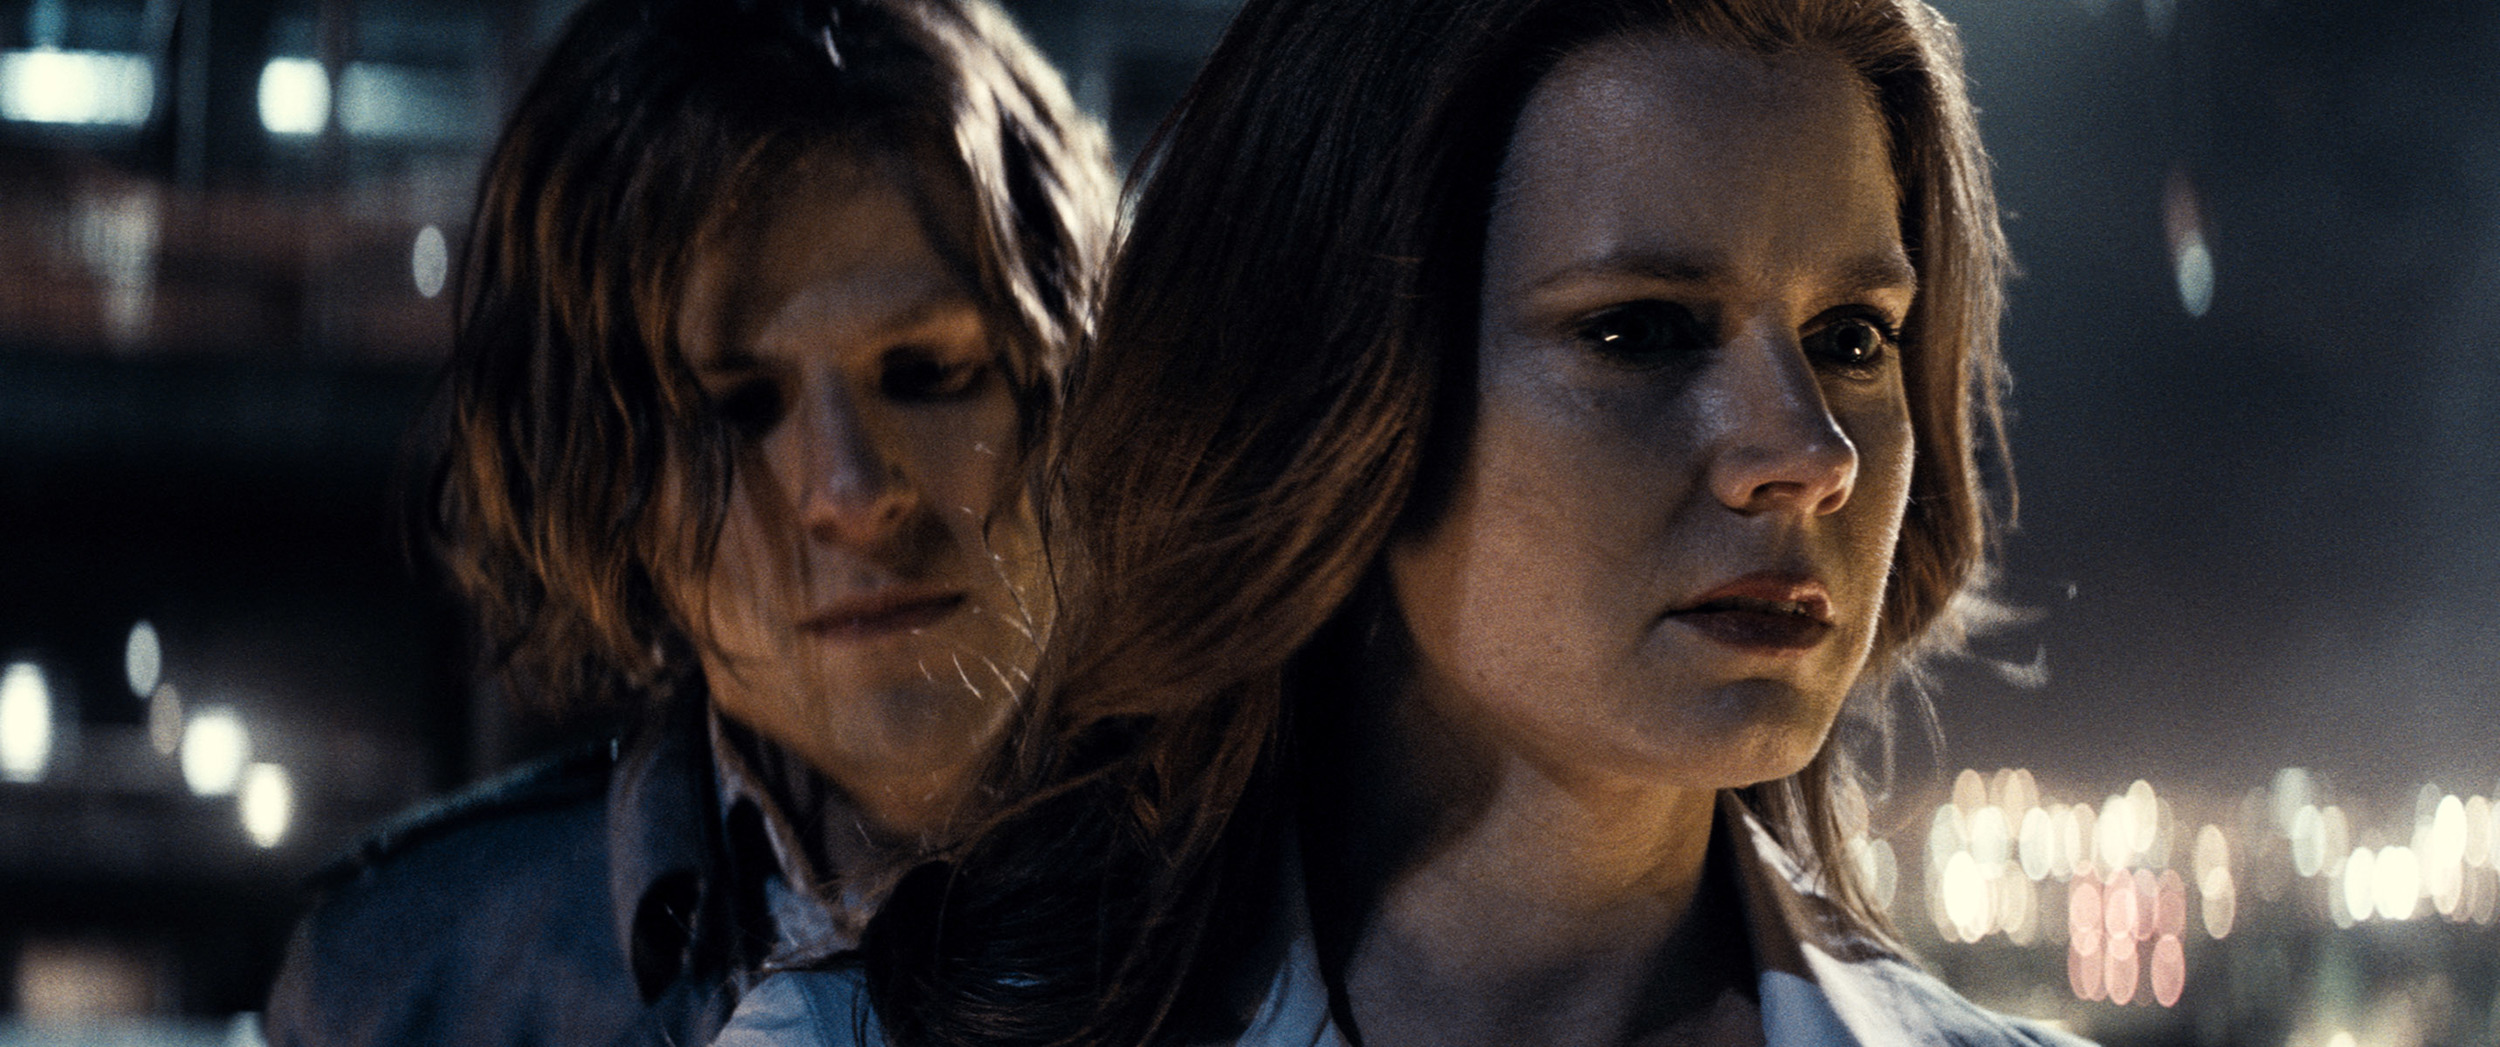 batman-vs-superman-amy-adams-jesse-eisenberg.jpg